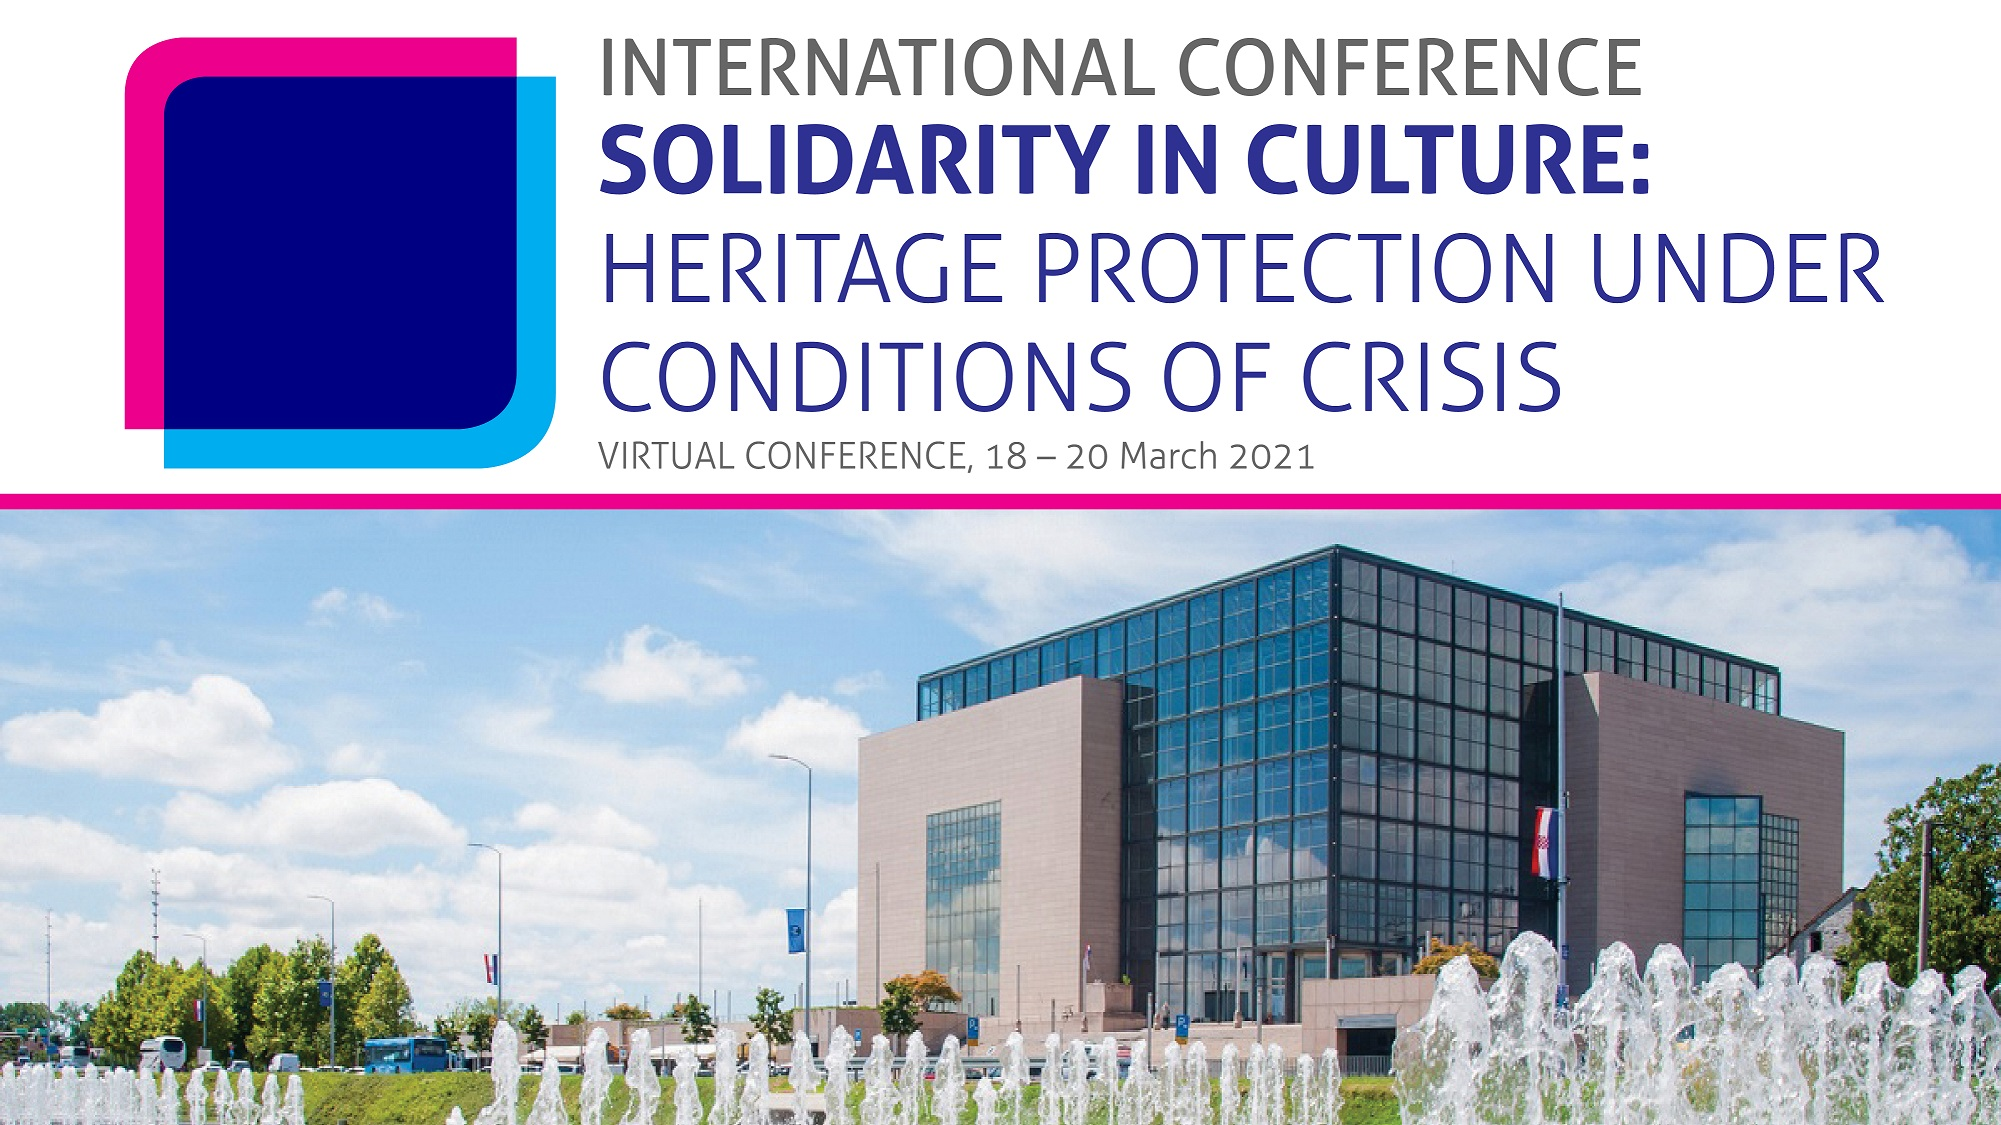 Virtual Solidarity in Culture Conference